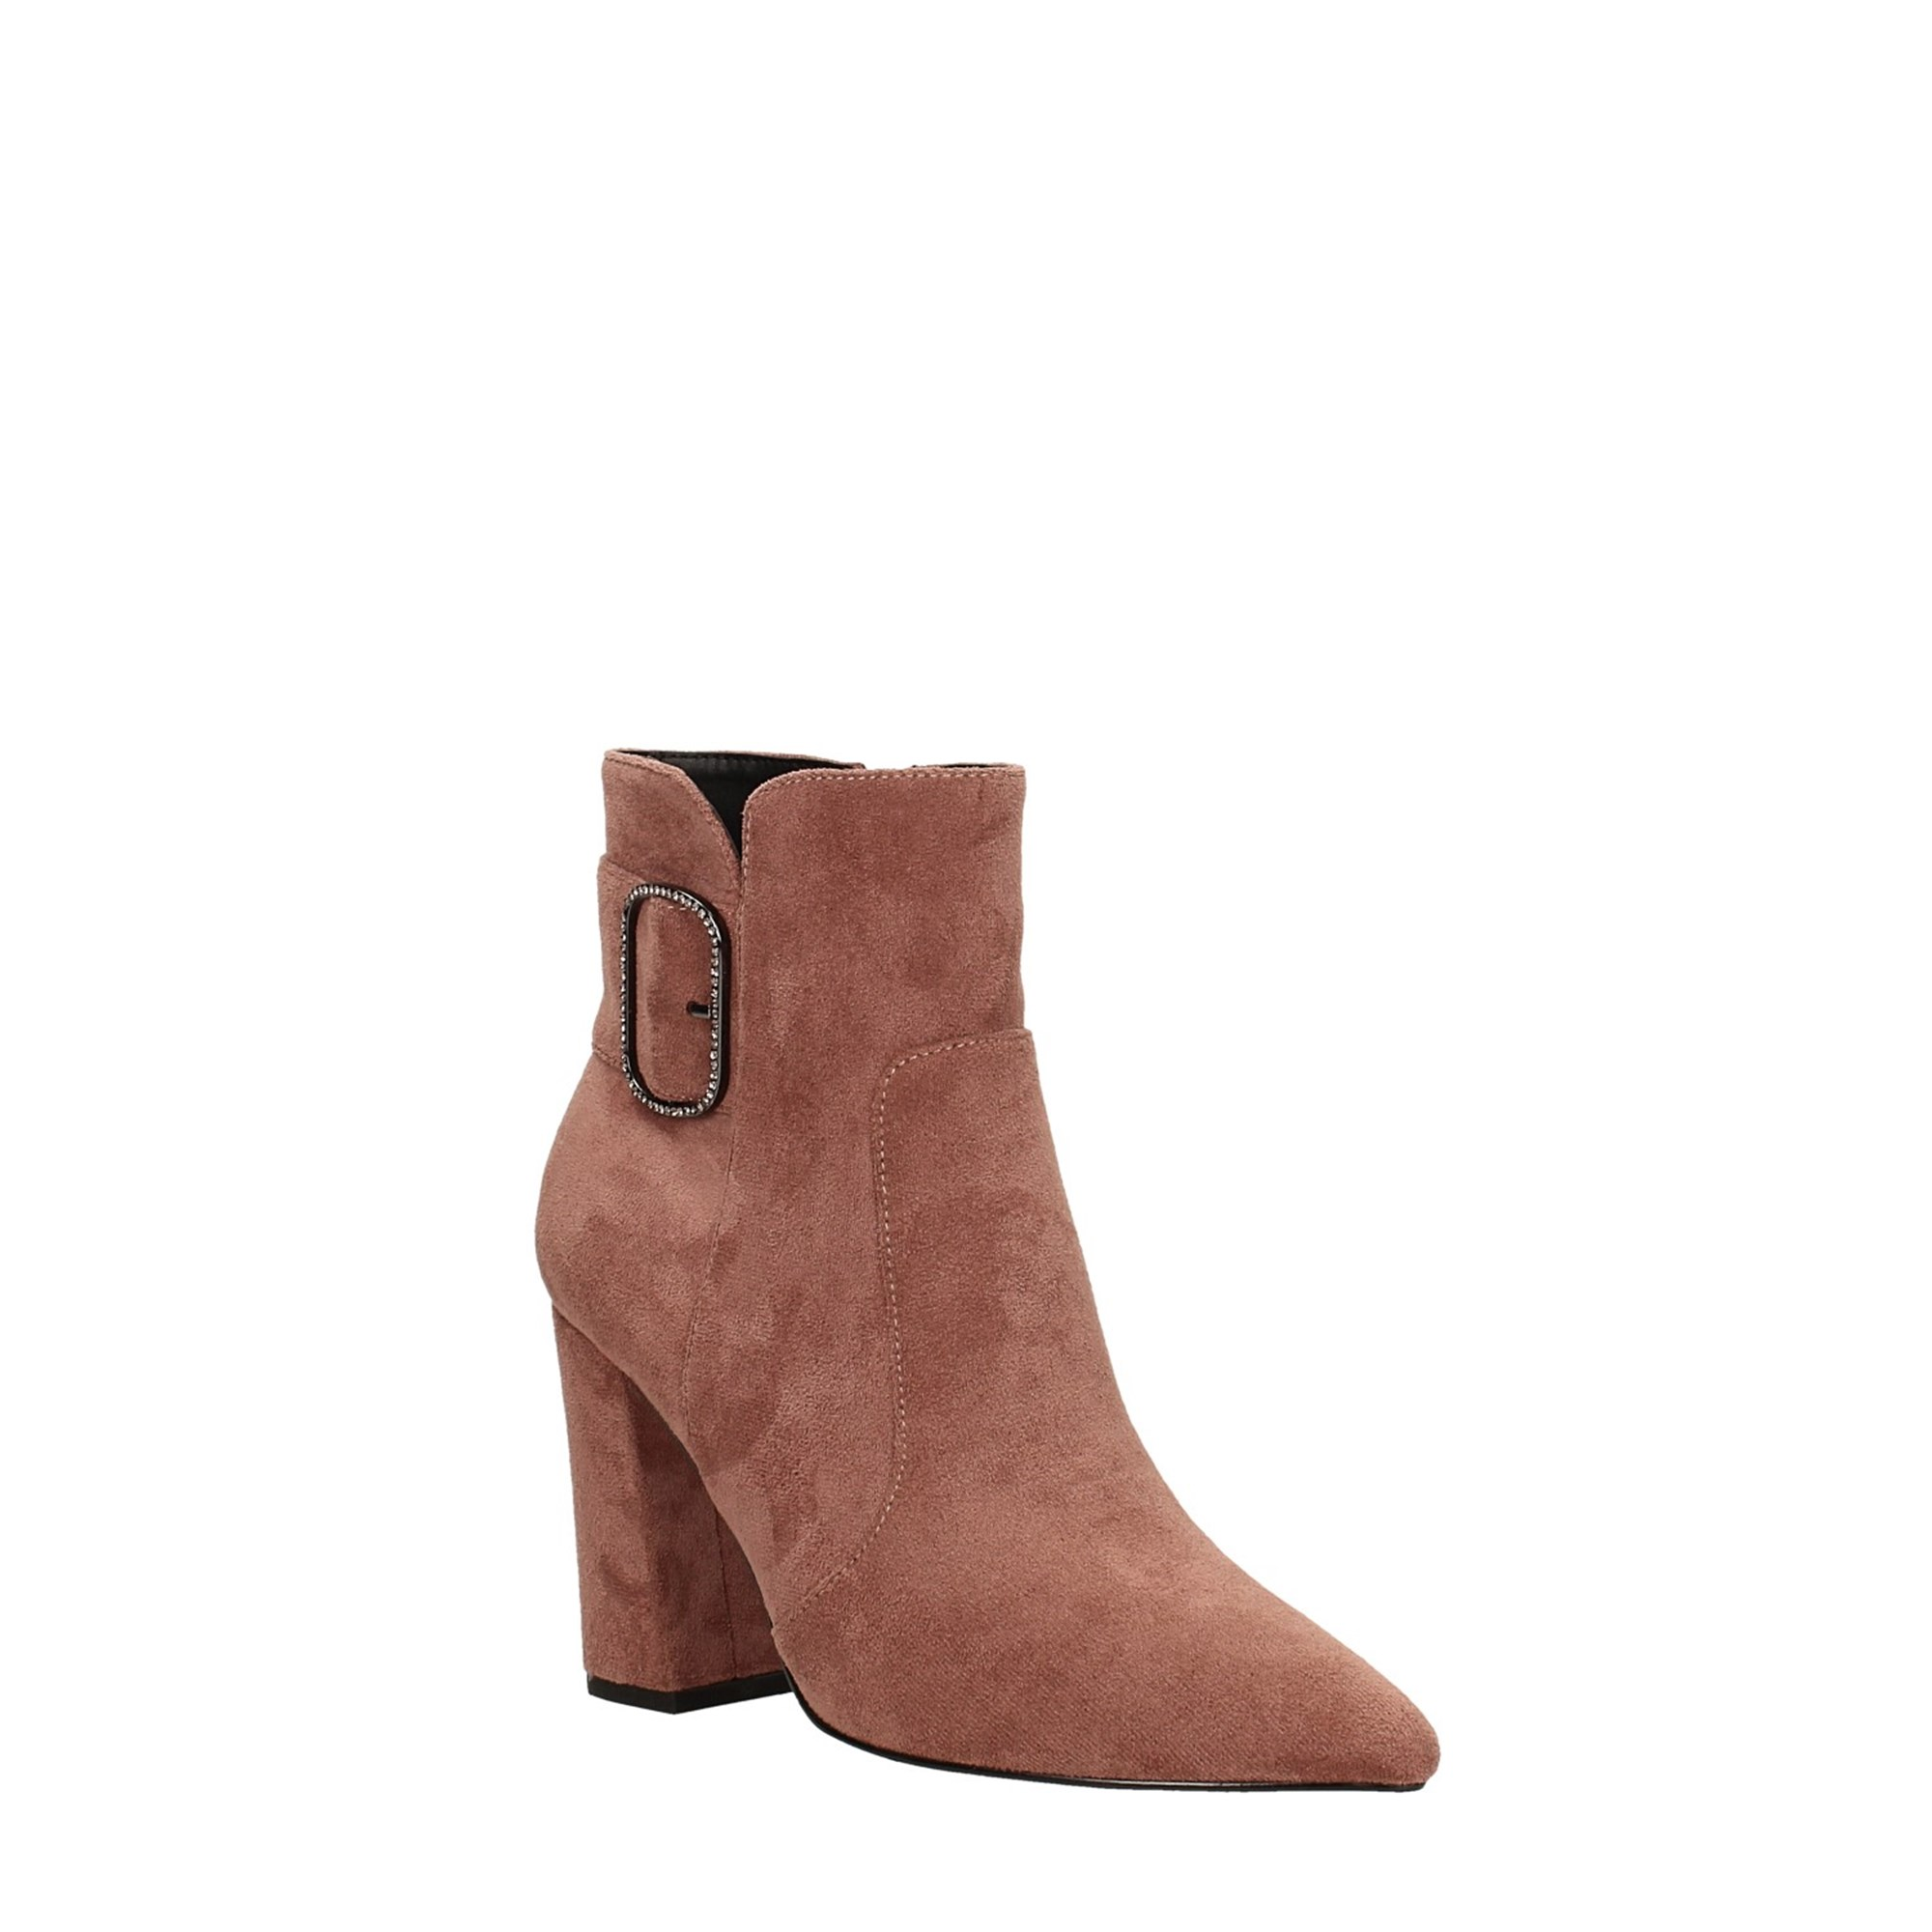 Tata Italia Shoes Woman Stivaletti 9557B-37-K